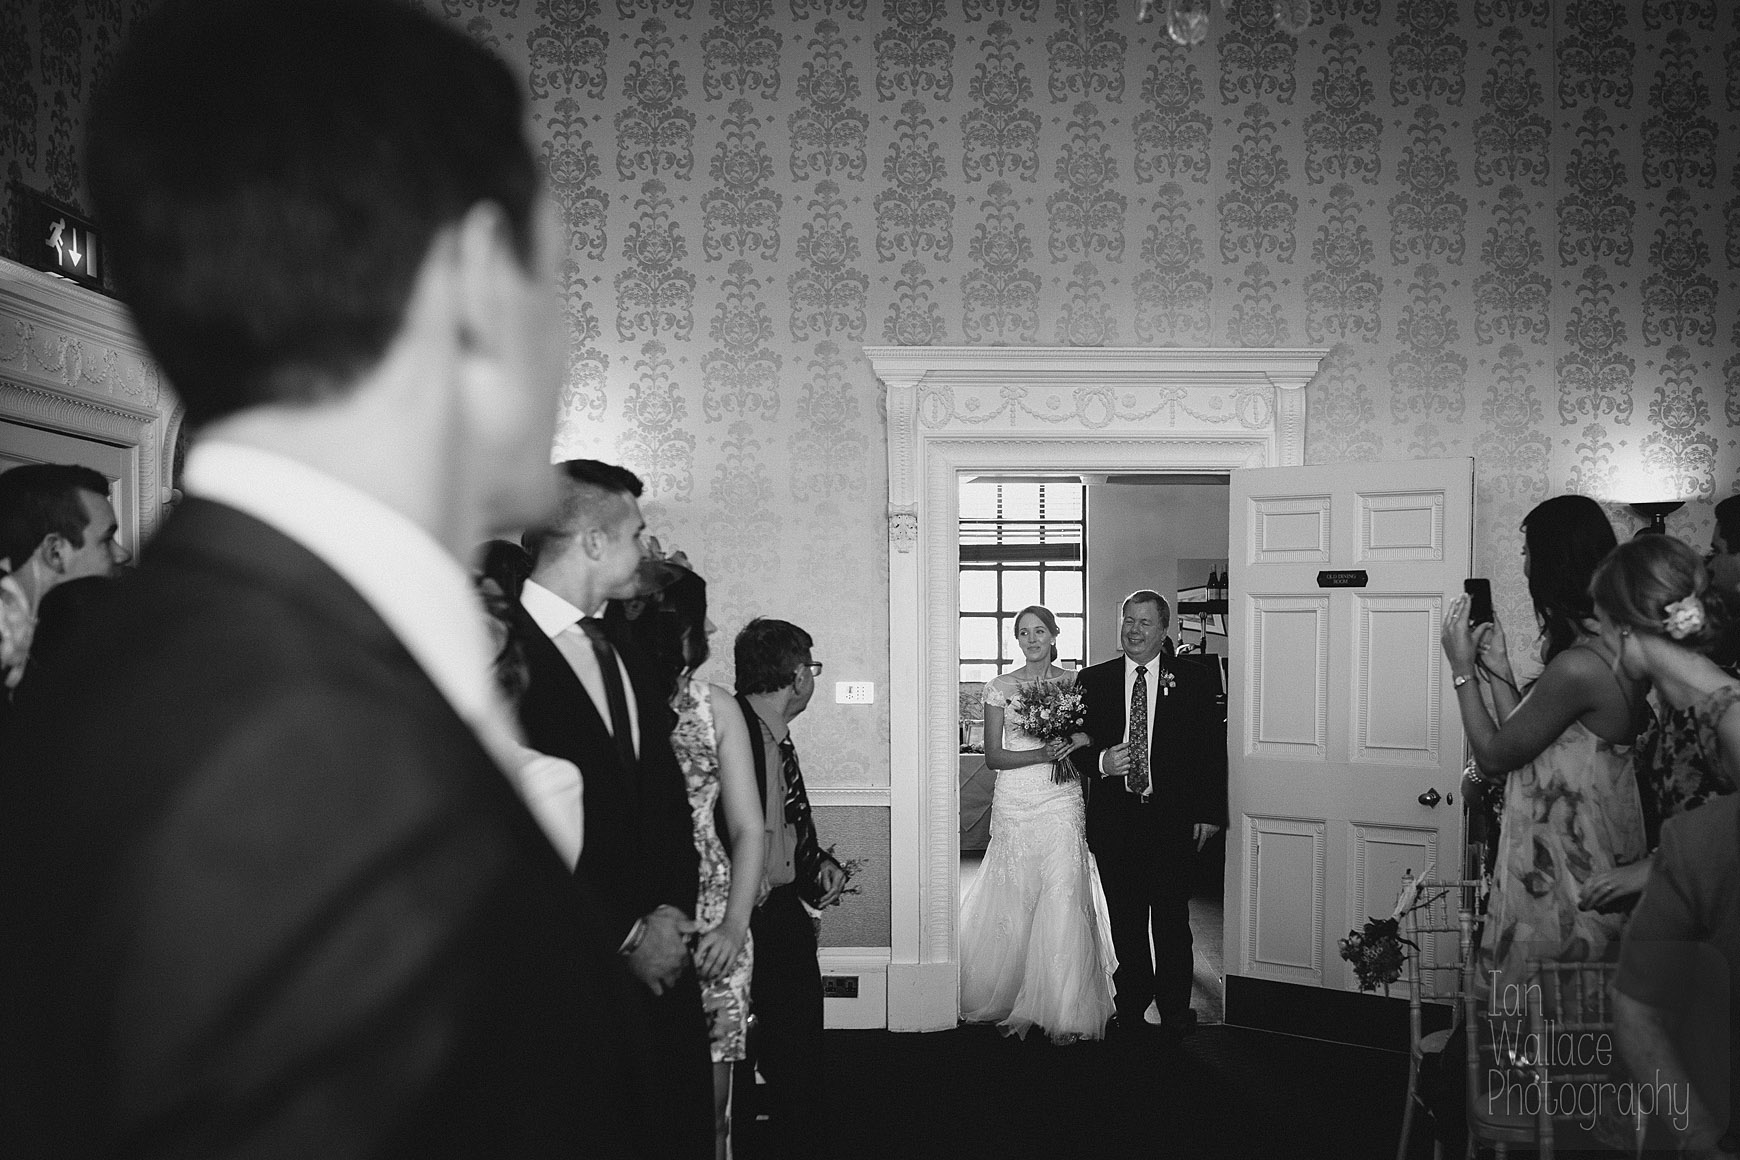 The bride enters the room with her father.